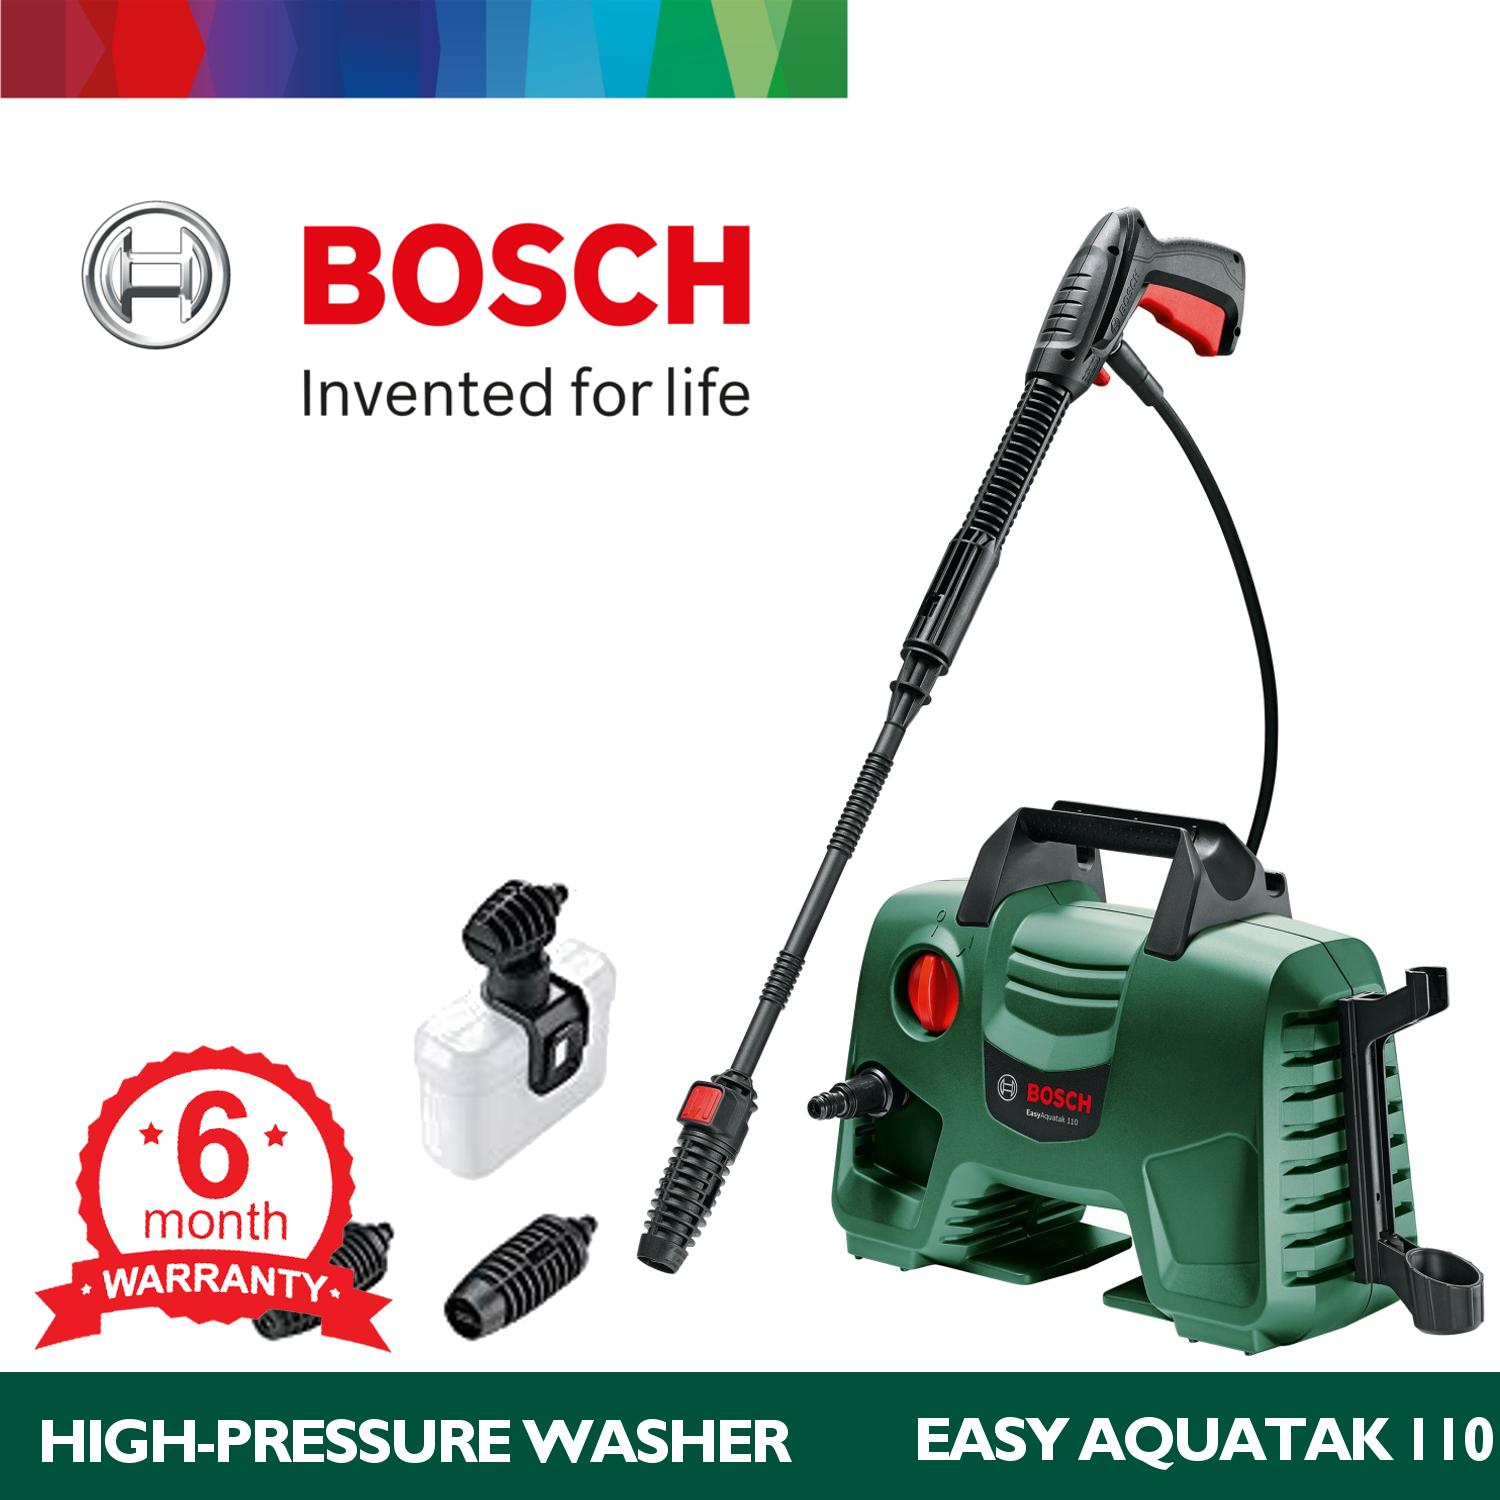 Bosch Easy Aquatak 110 Portable High Pressure Washer with Gun and Lance Nozzle and Car Wash Set NEW MODEL 2018 Philippines